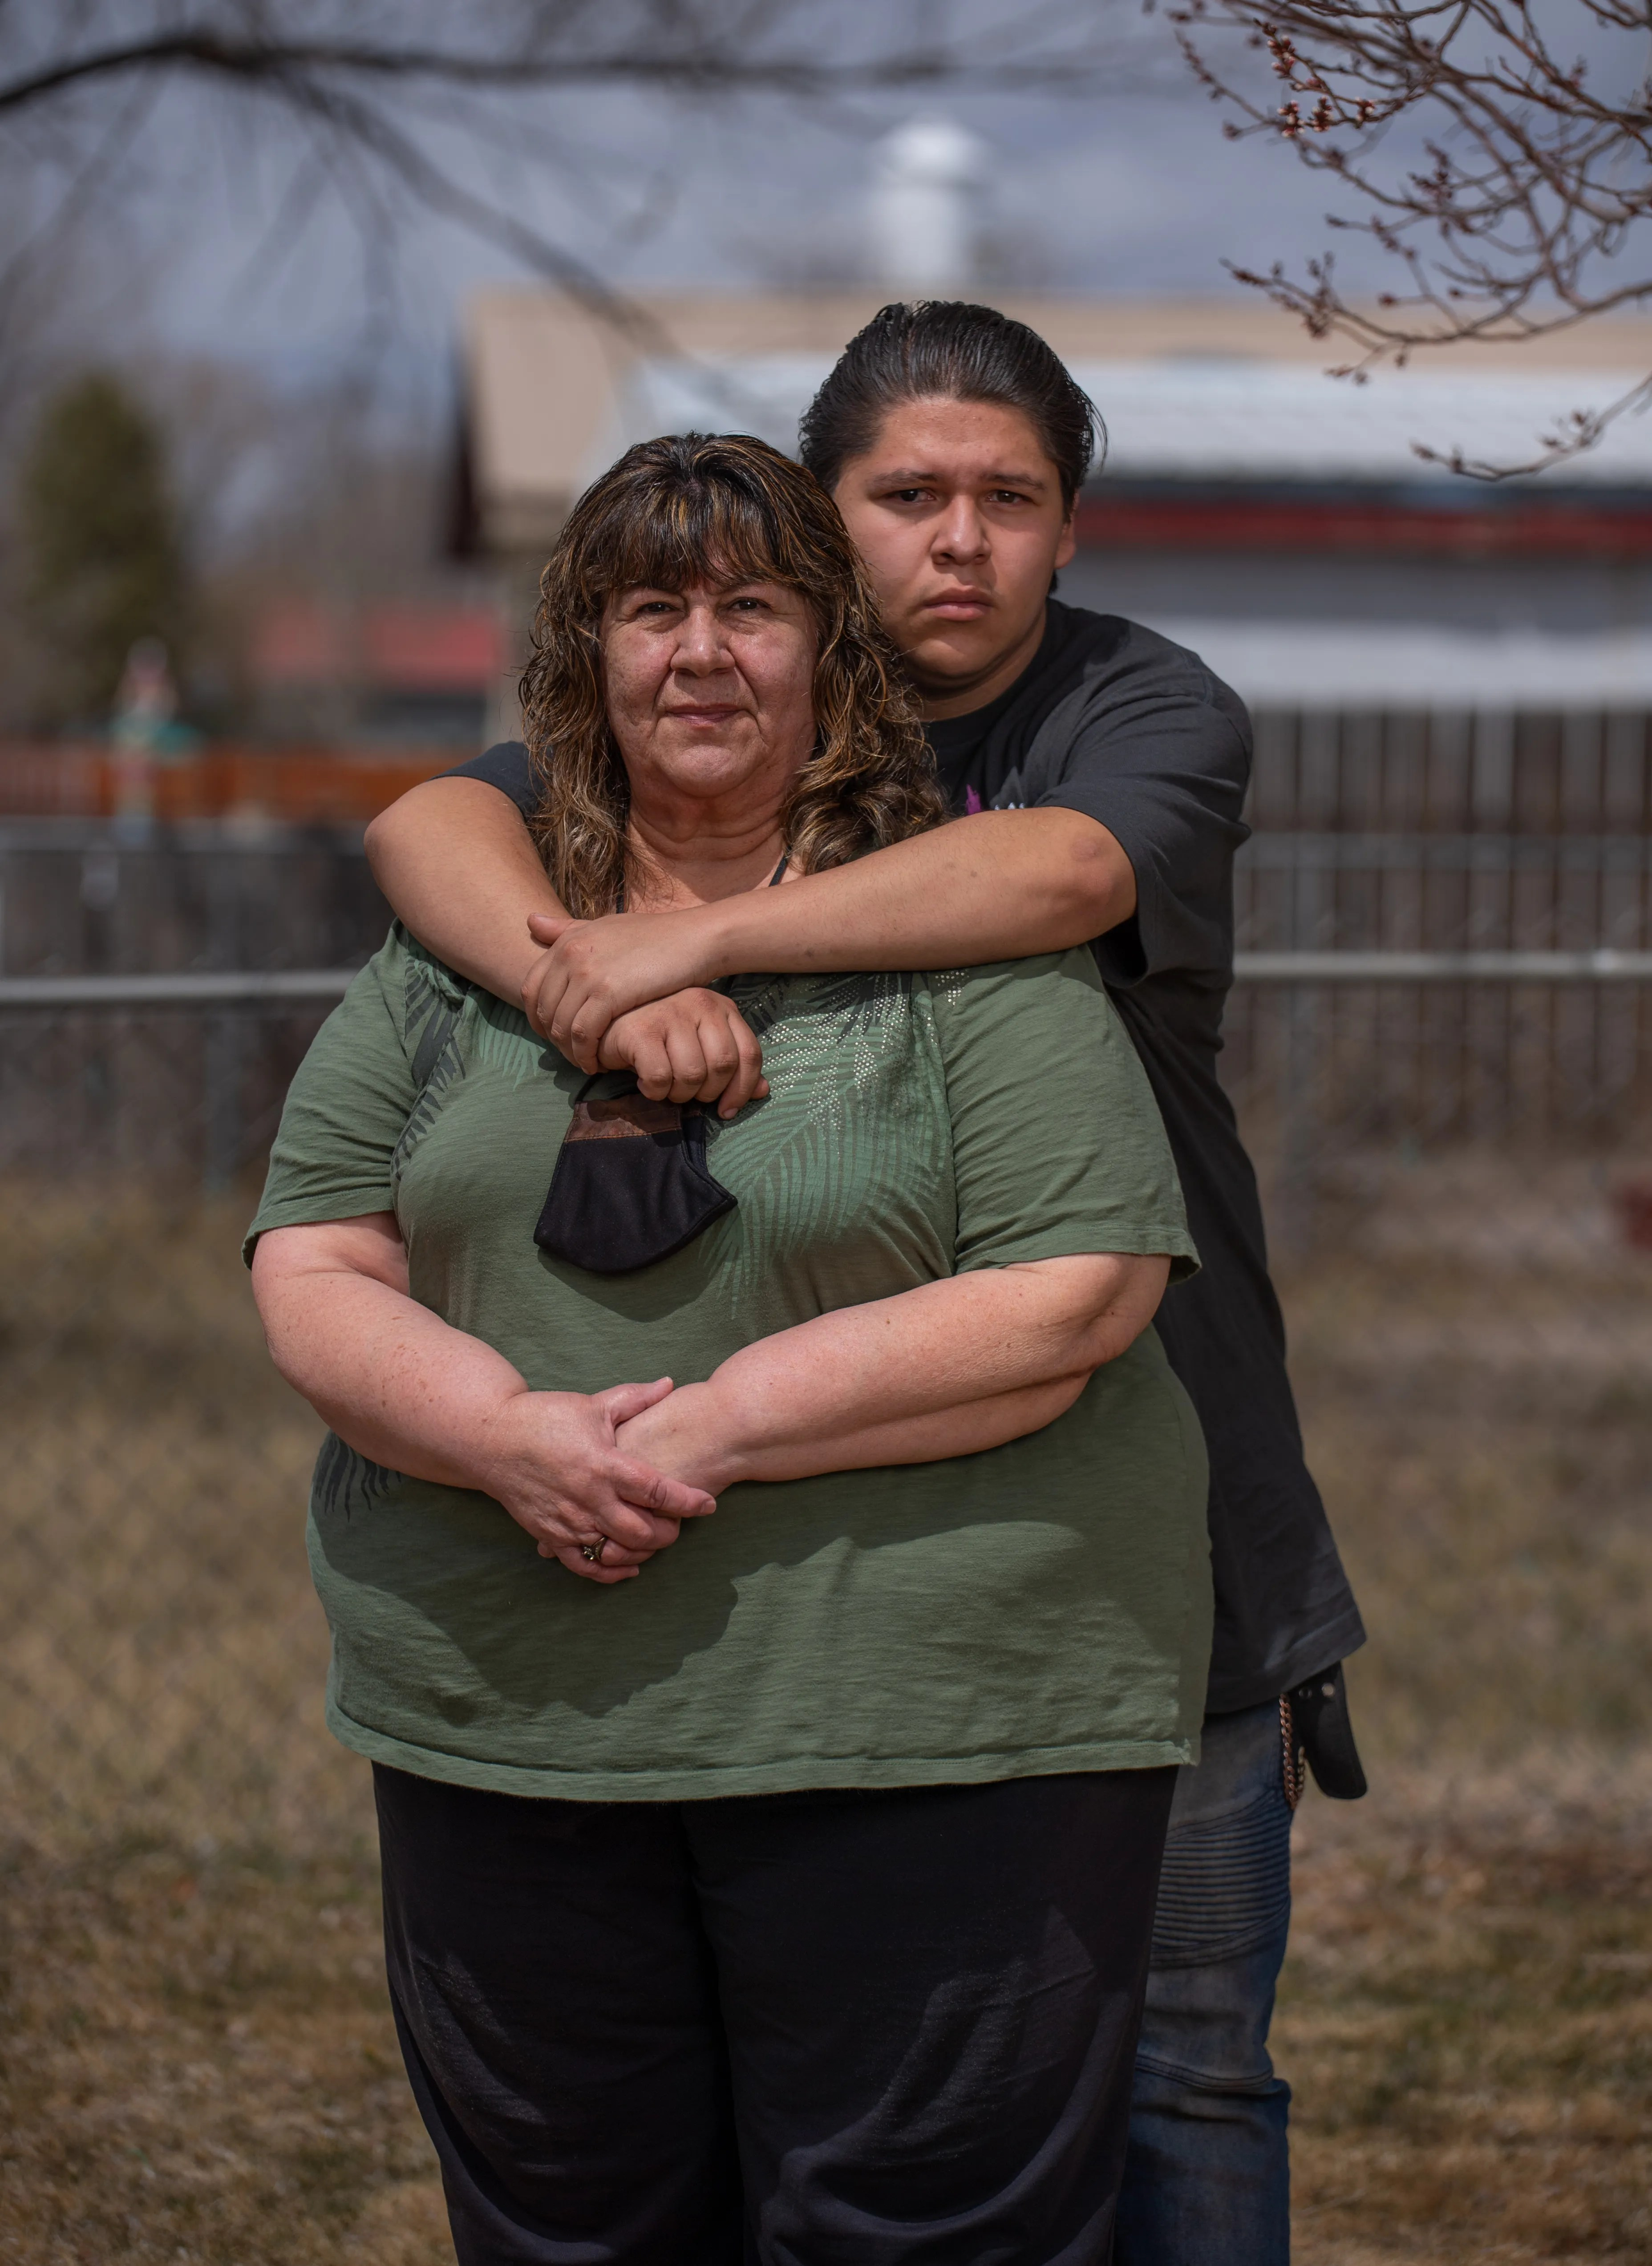 """Everyone in Louise Malouff's family got sick in 2008 during a salmonella outbreak in Alamosa, Colorado, but no one was worse off than her son Abel, now 19. """"I just remember him lying on the floor in the emergency room, asking me if he was going to die,"""" recalls Malouff, who still won't drink the city's tap water."""